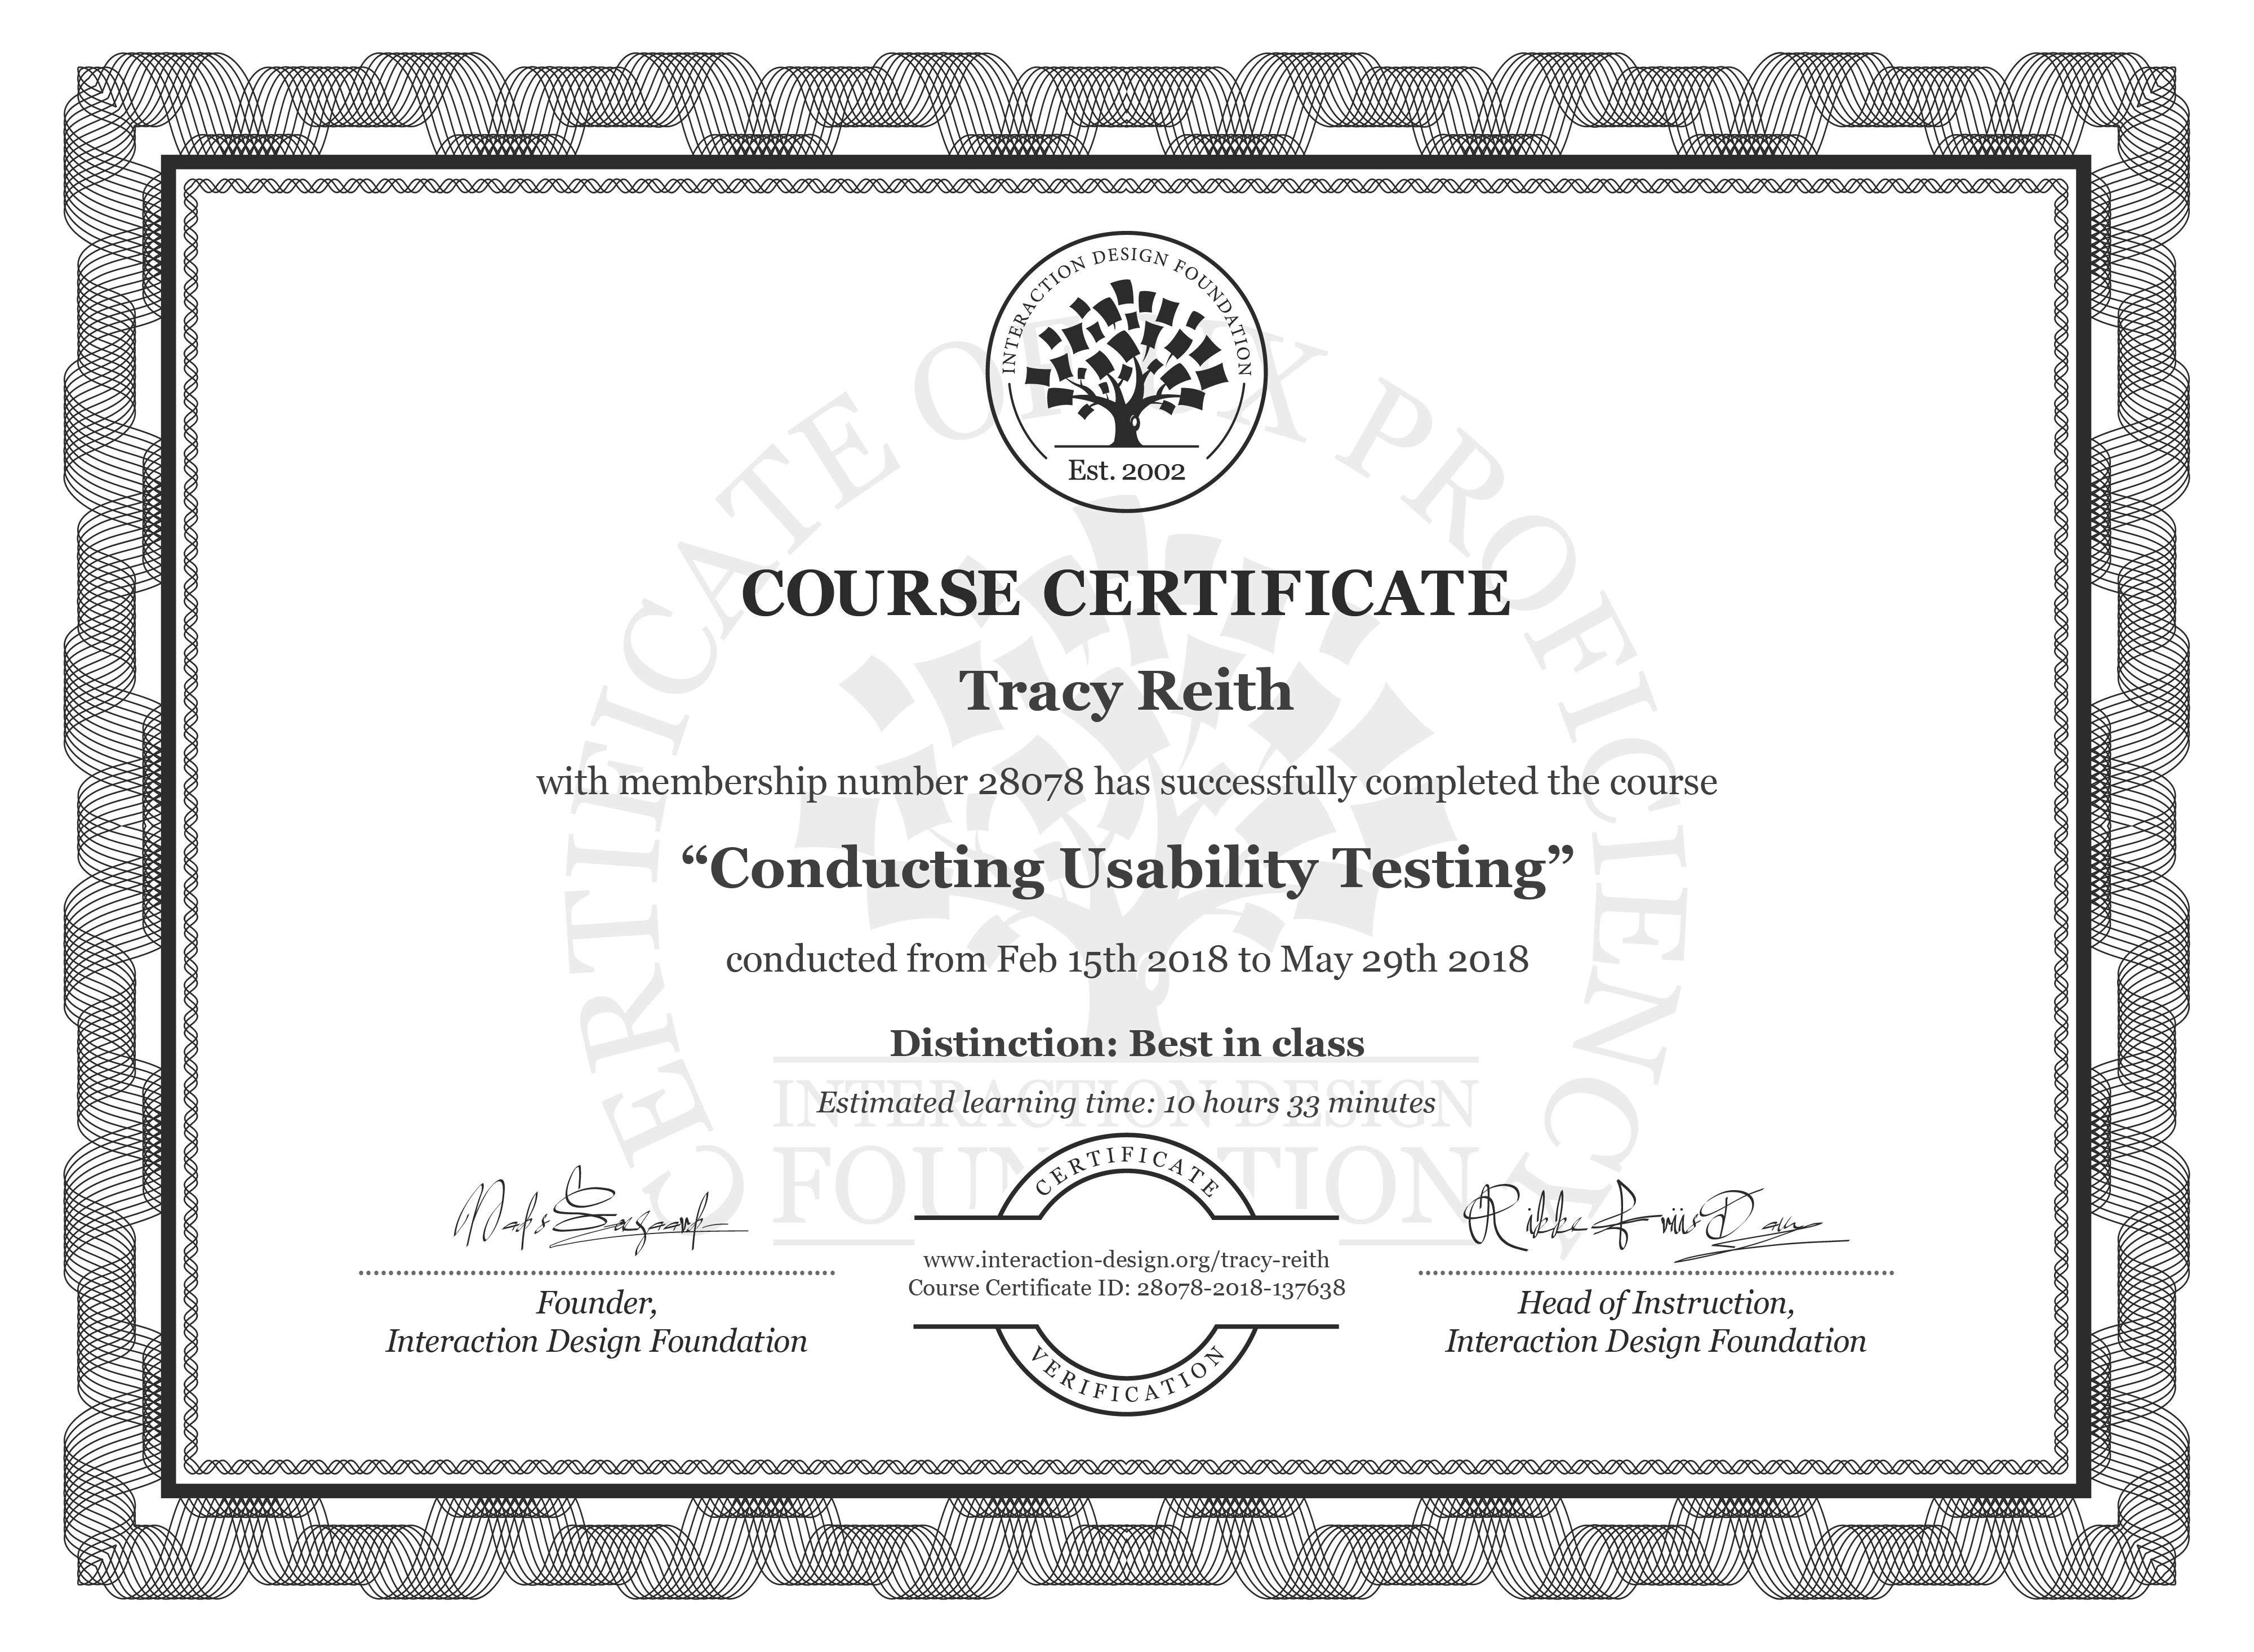 Tracy Reith: Course Certificate - Conducting Usability Testing